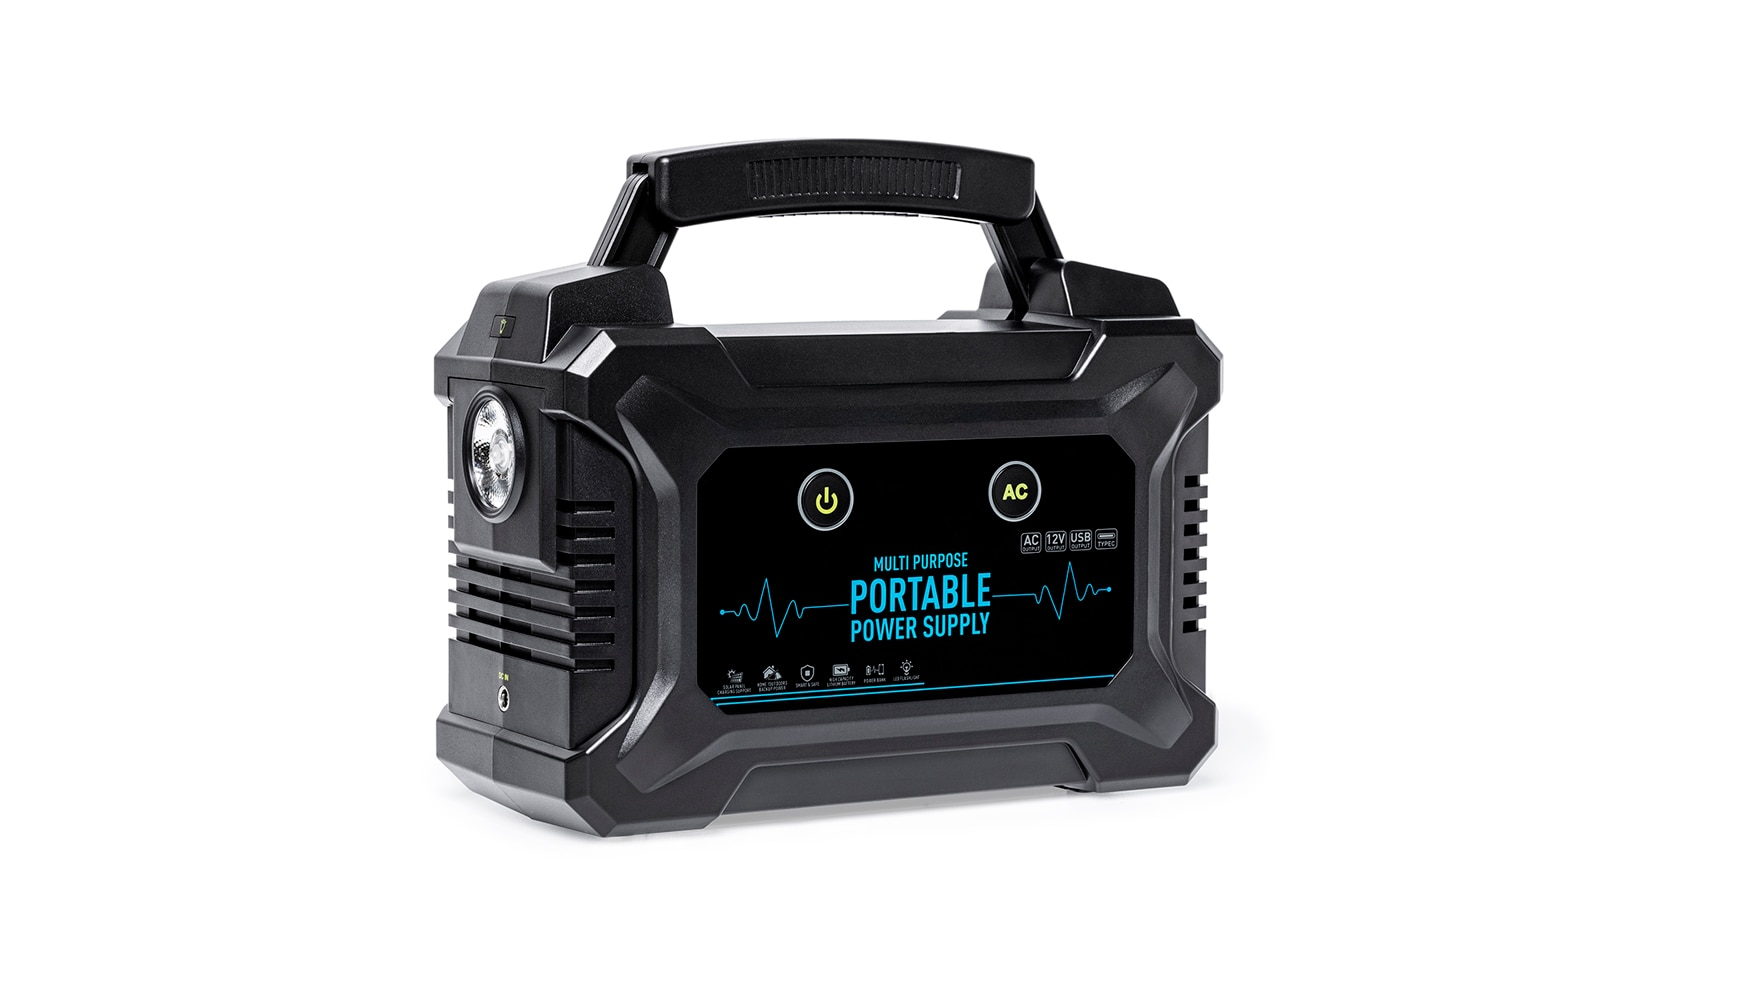 Portable Power Station 220Wh Emergency Backup Lithium Battery 200W AC Inverter Outlet Solar Generator